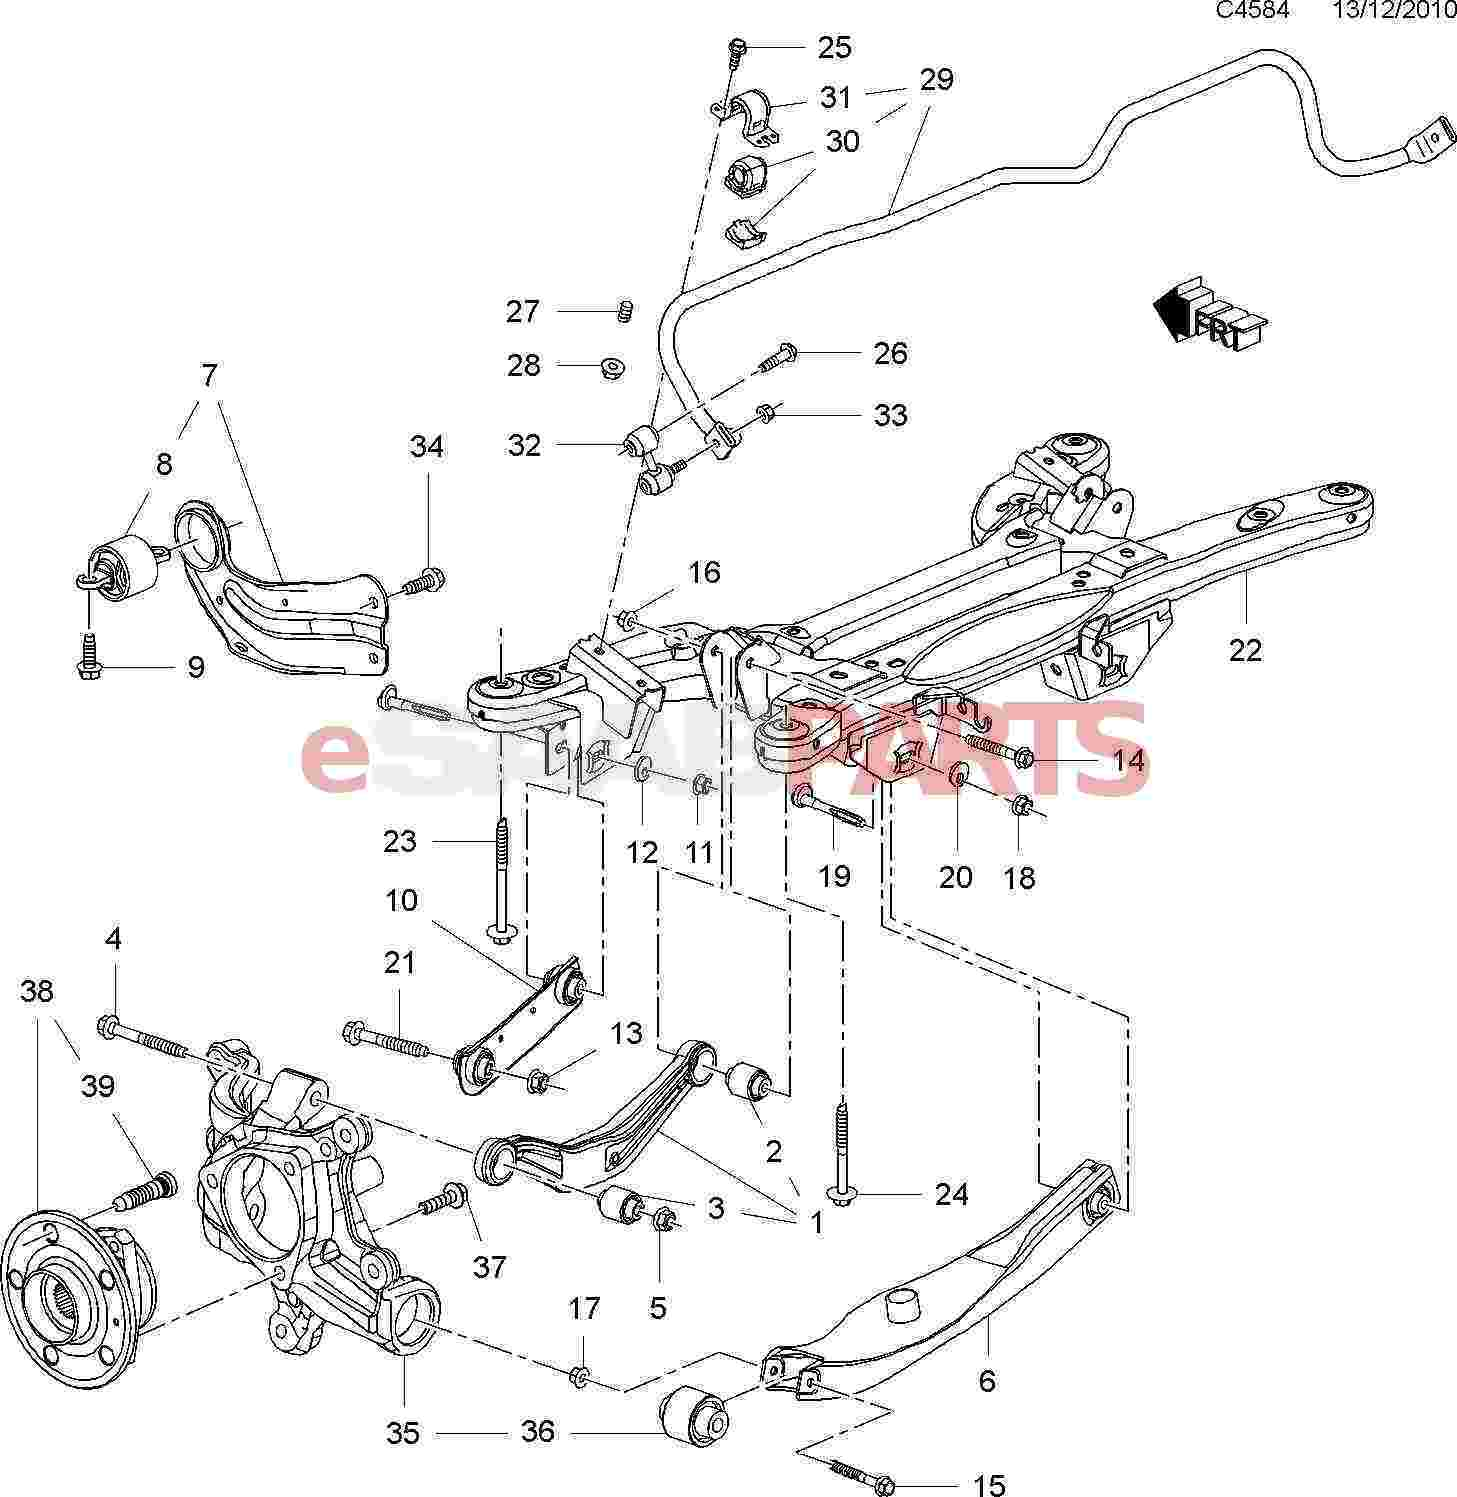 saab 9 5 rear suspension diagram